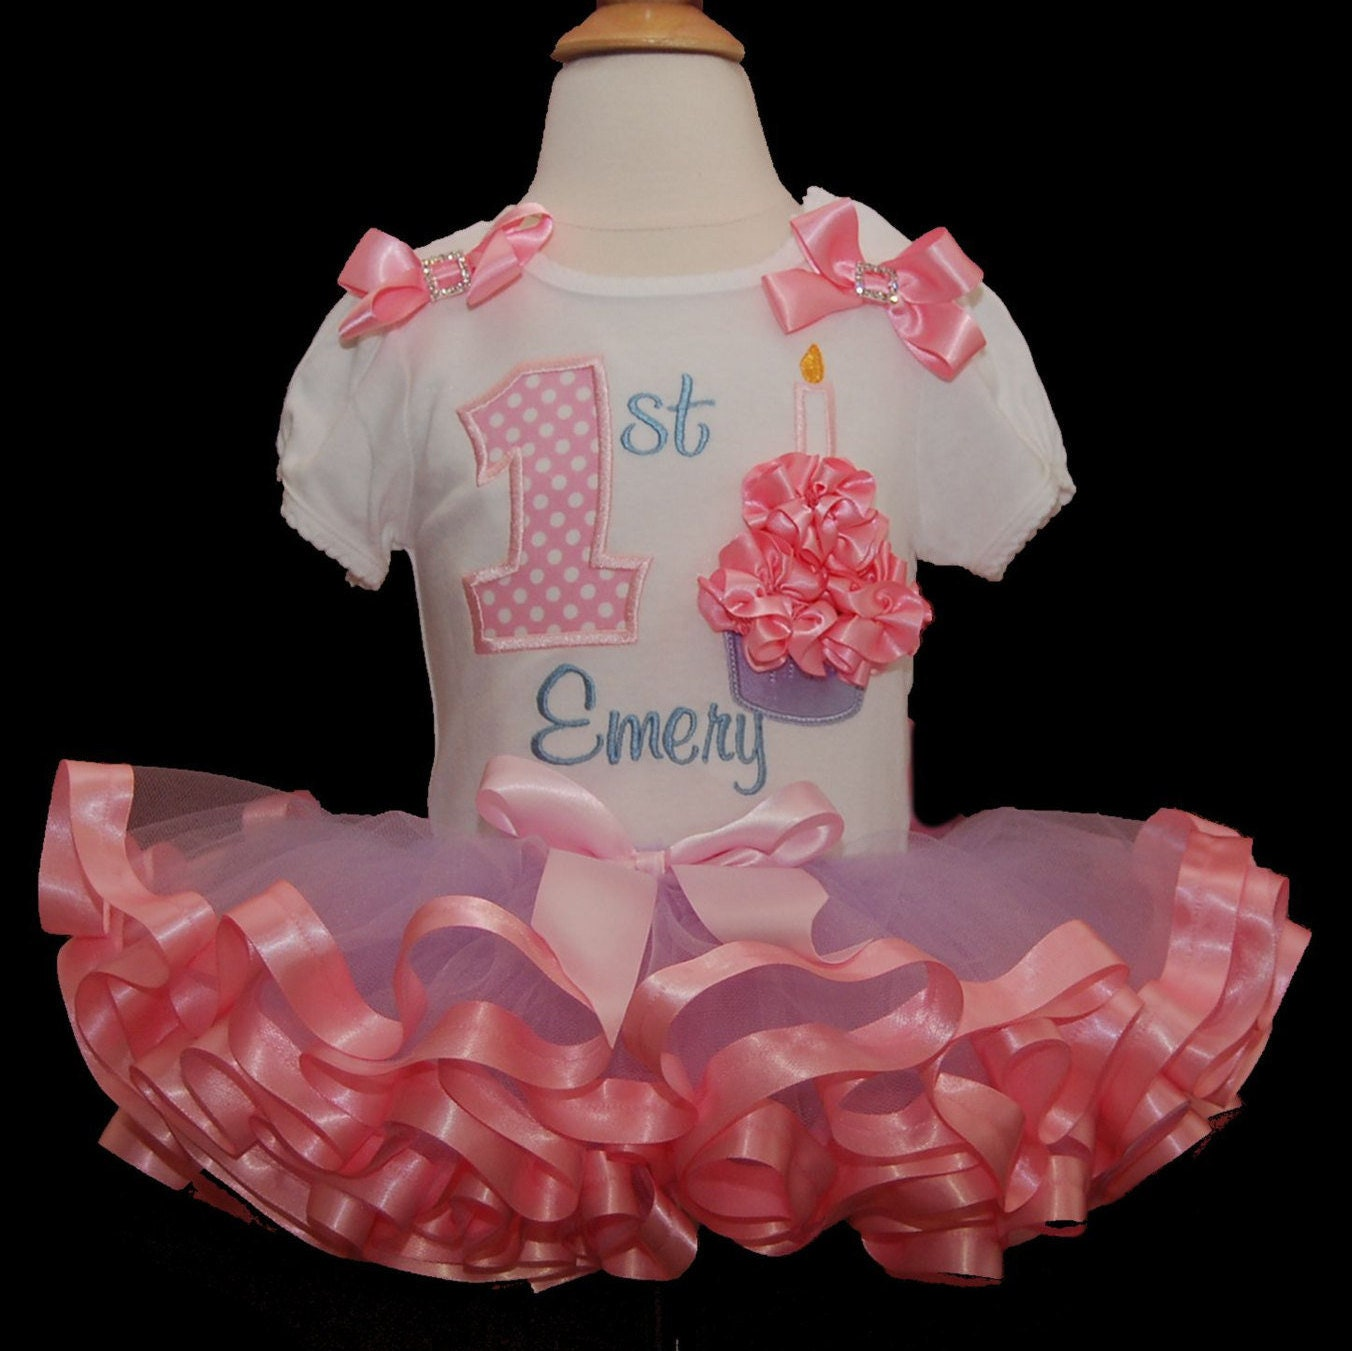 Ribbon 3D Cupcake 1st Birthday Tutu Outfit  in lavender and  pink 2 pieces includes top and tutu only, 1st birthday tutu outfit